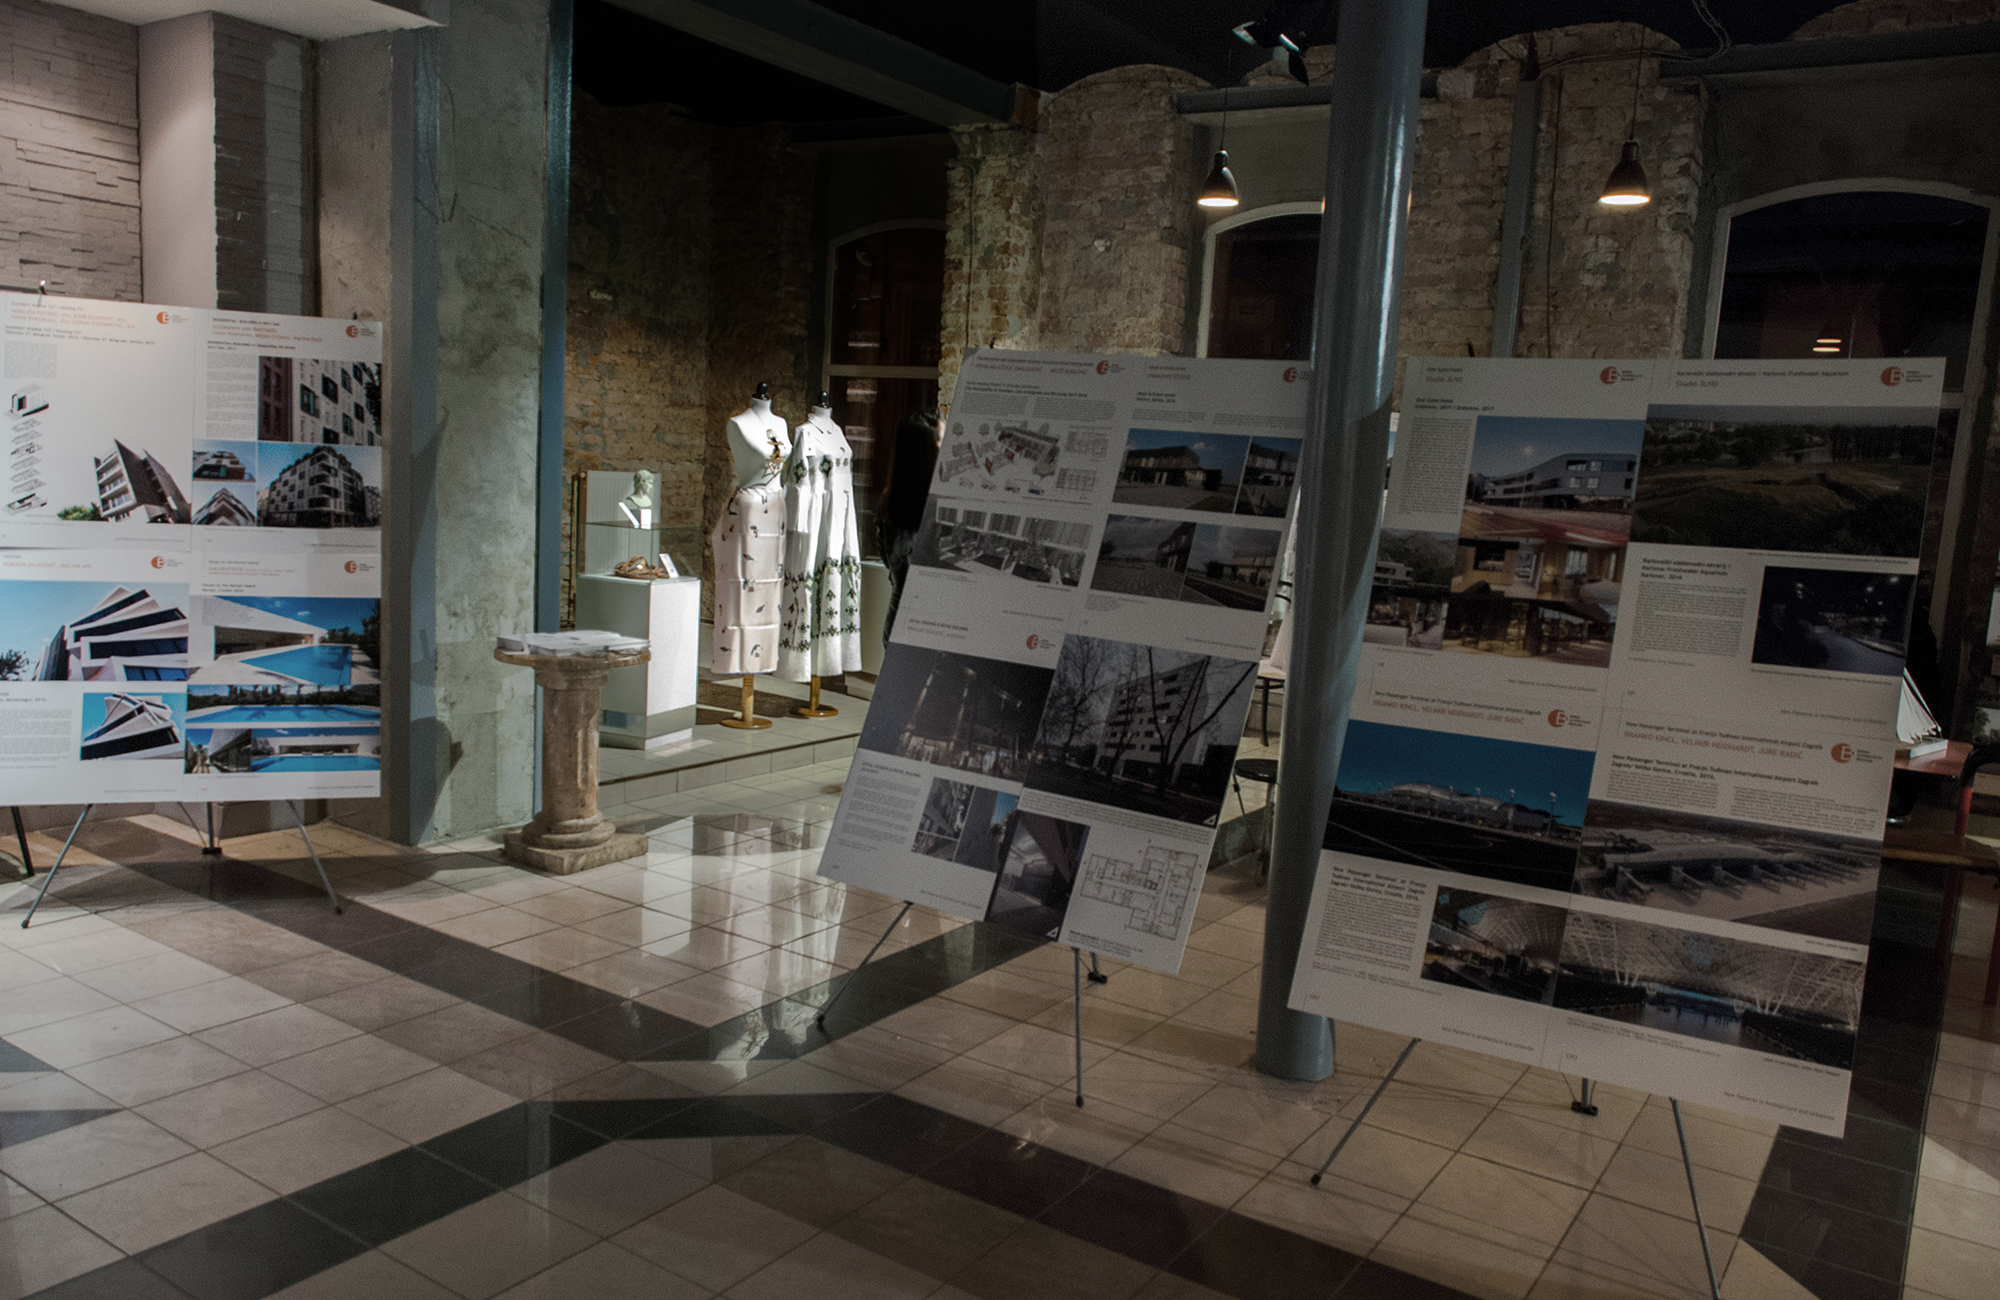 The Greek Designers ® Balkan Architectural Biennale